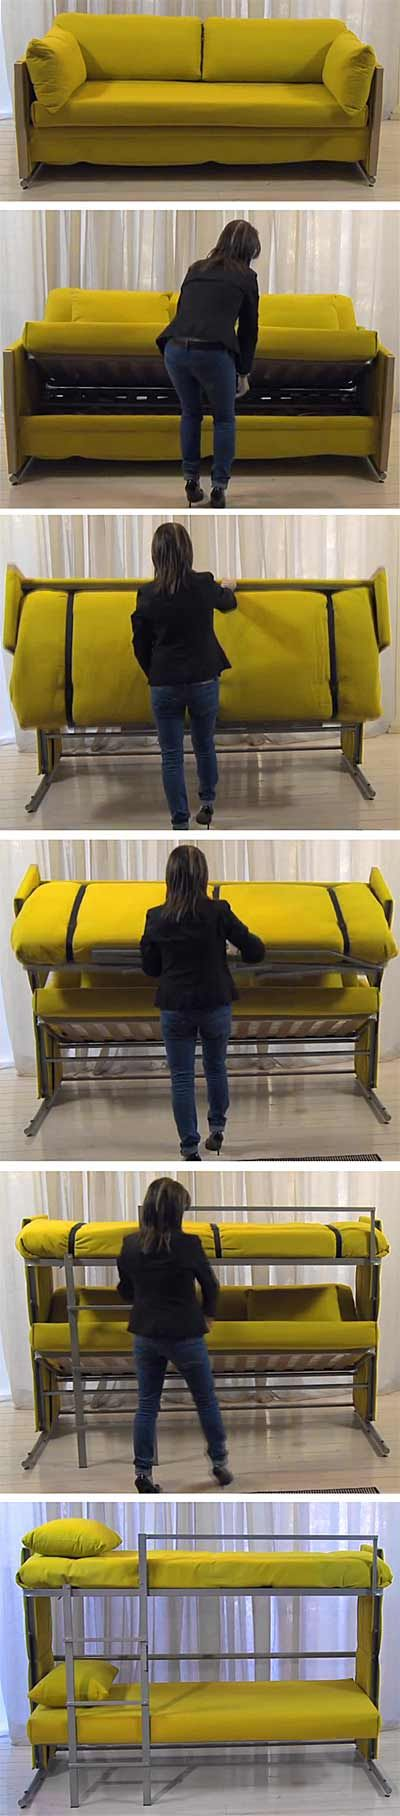 Bunk bed and couch in one - amazing engineering from Italy!